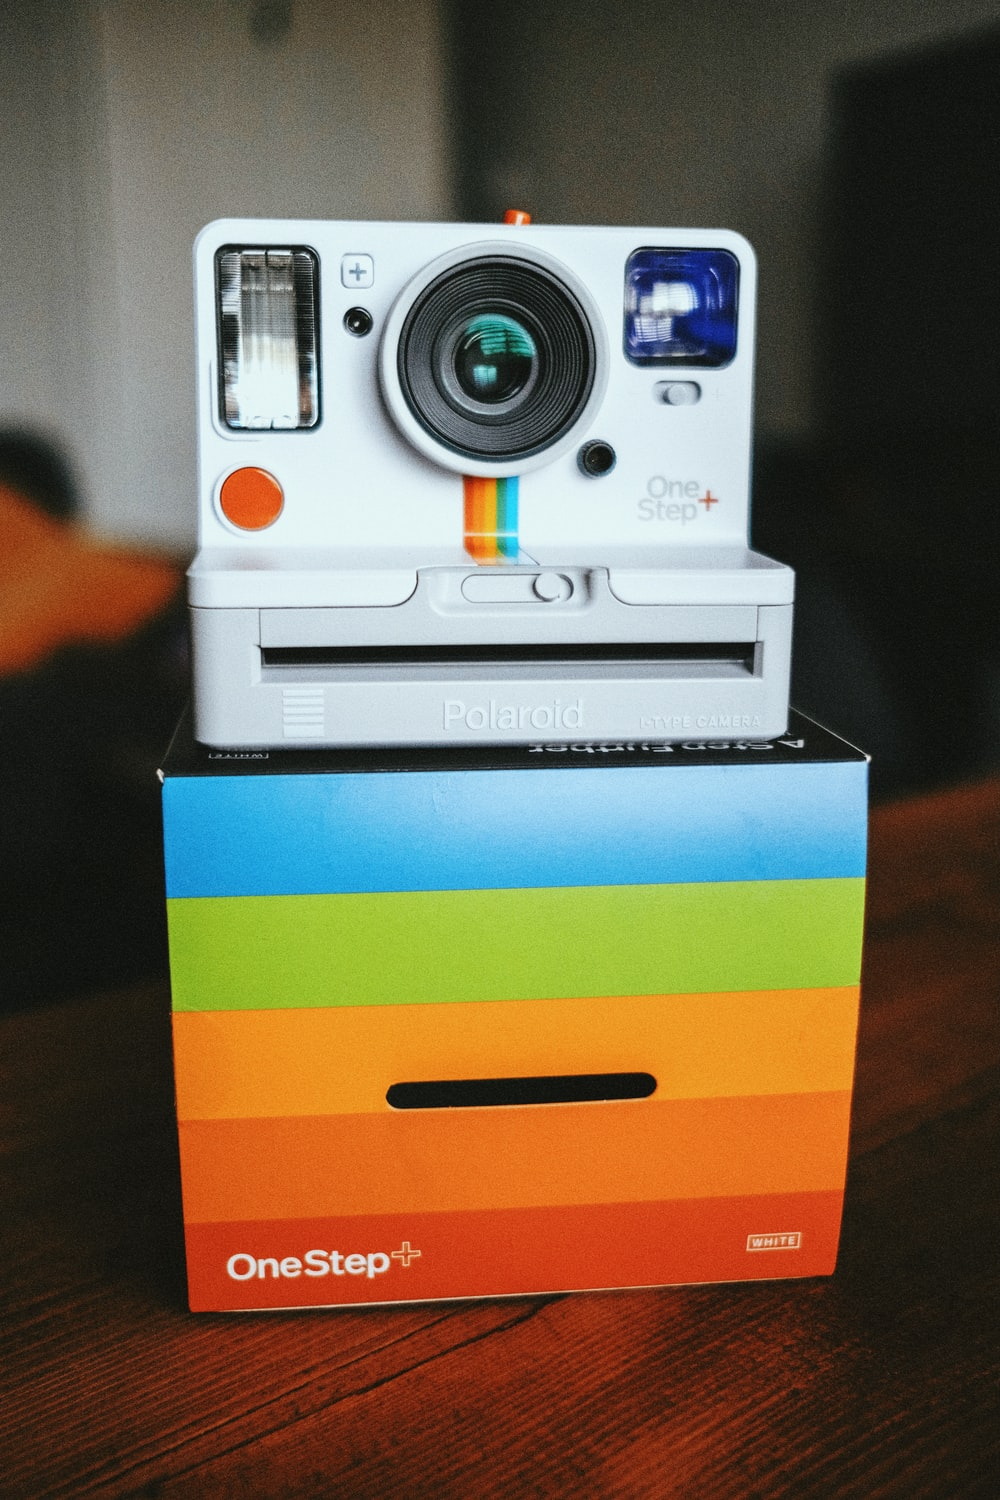 white and blue camera on yellow and blue striped box